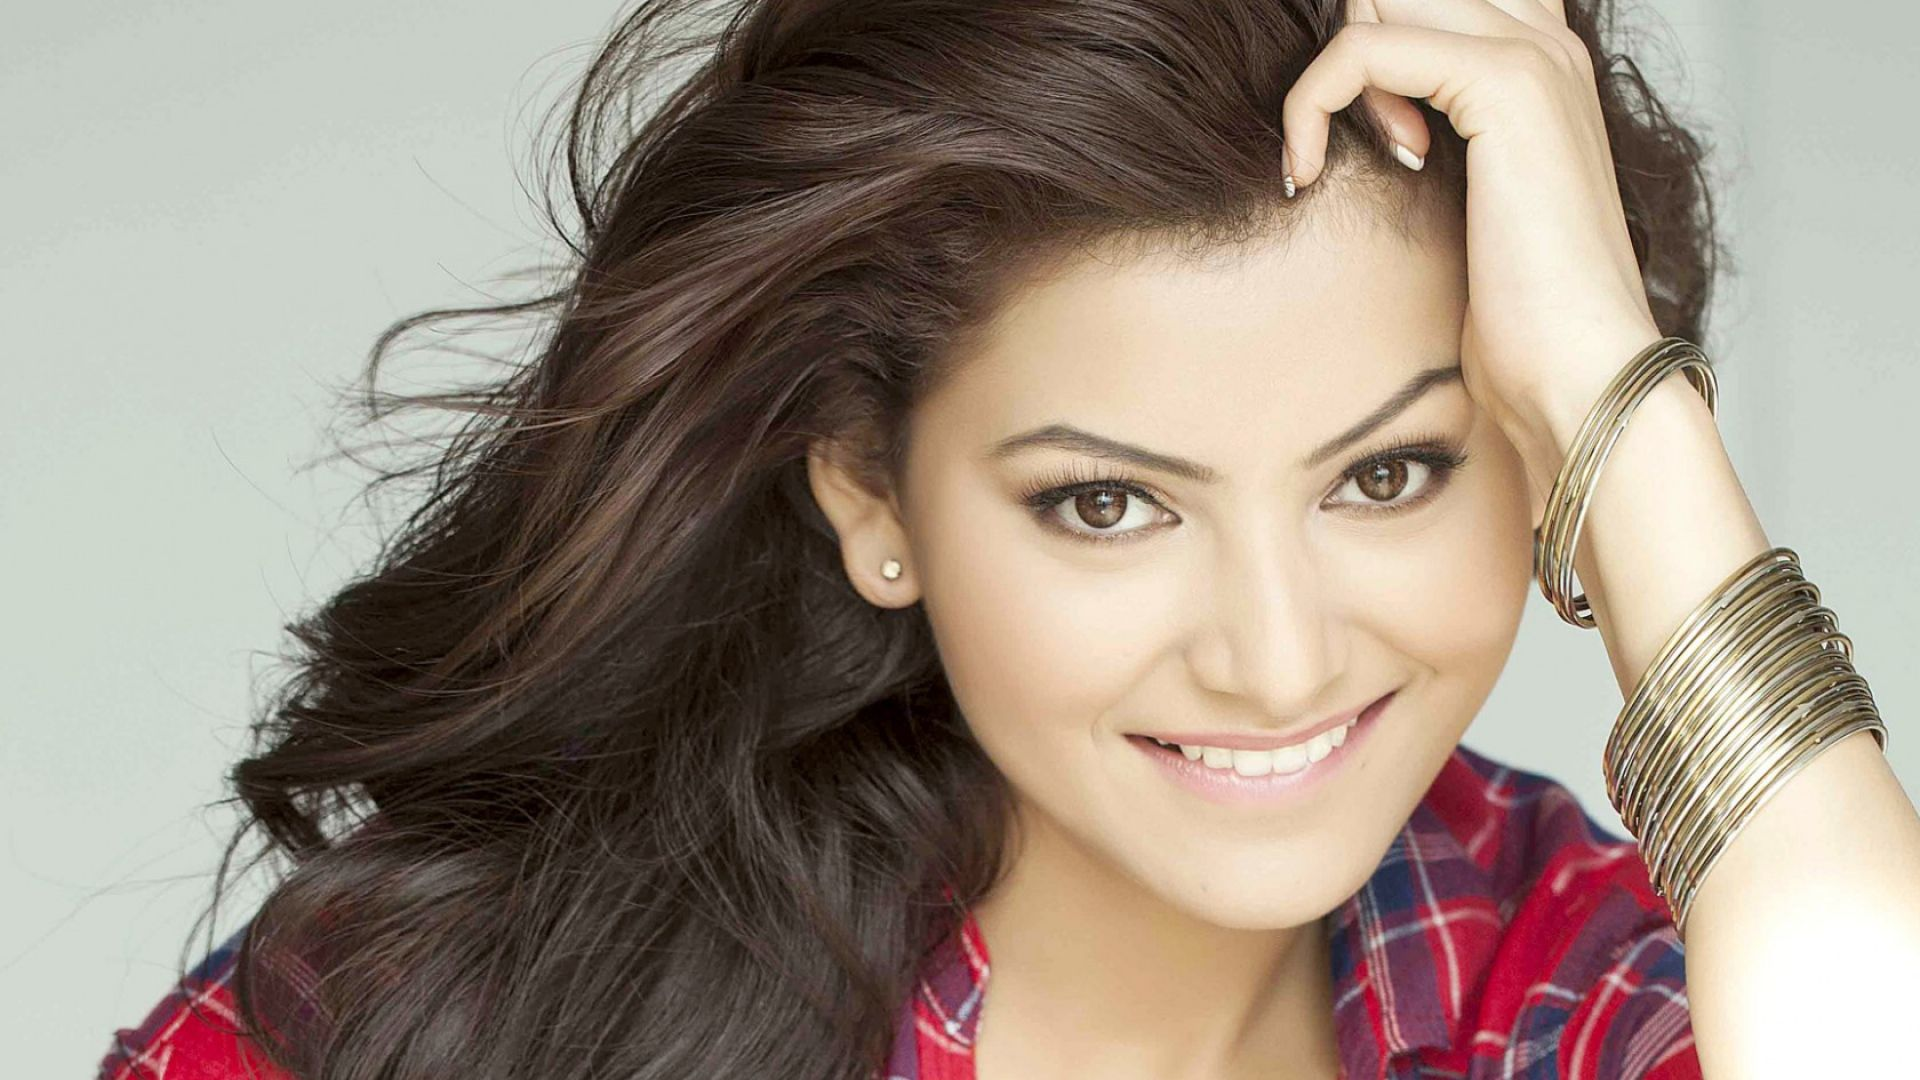 Hd wallpaper bollywood - Search Results For Urvashi Rautela Actress Wallpaper Adorable Wallpapers Bollywood Wallpaper